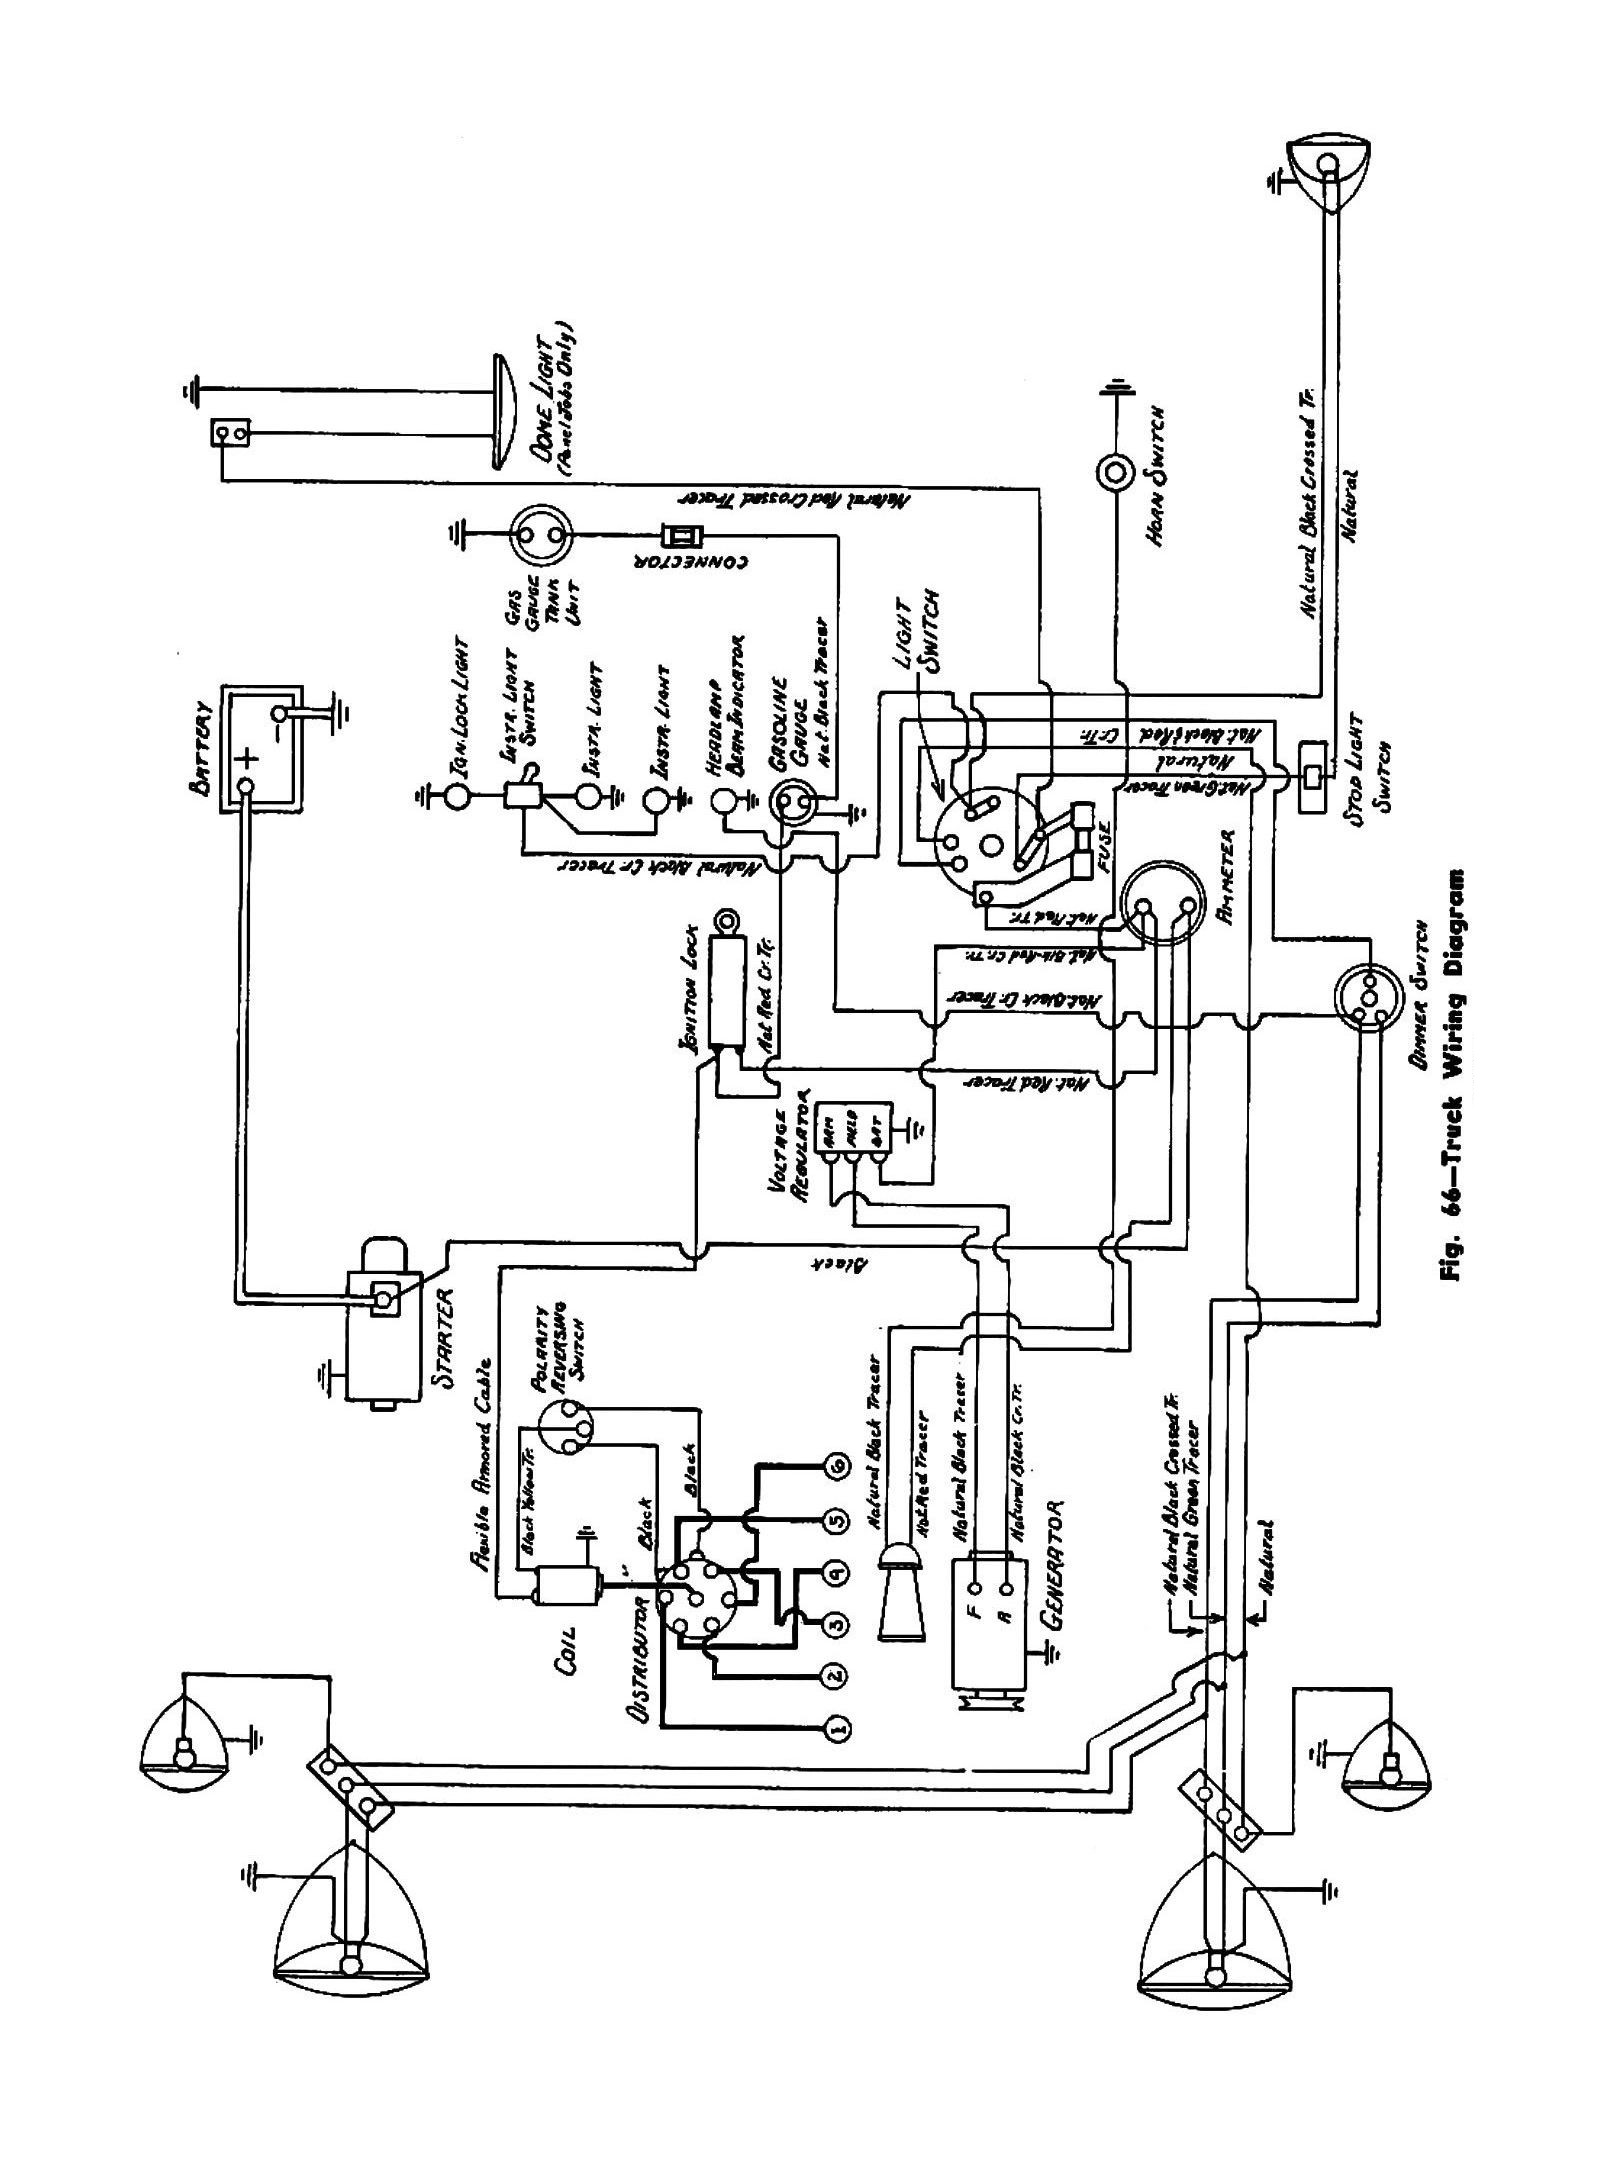 45truck wiring truck pinterest ford readingrat net Wiring Schematics for Johnson Outboards at reclaimingppi.co